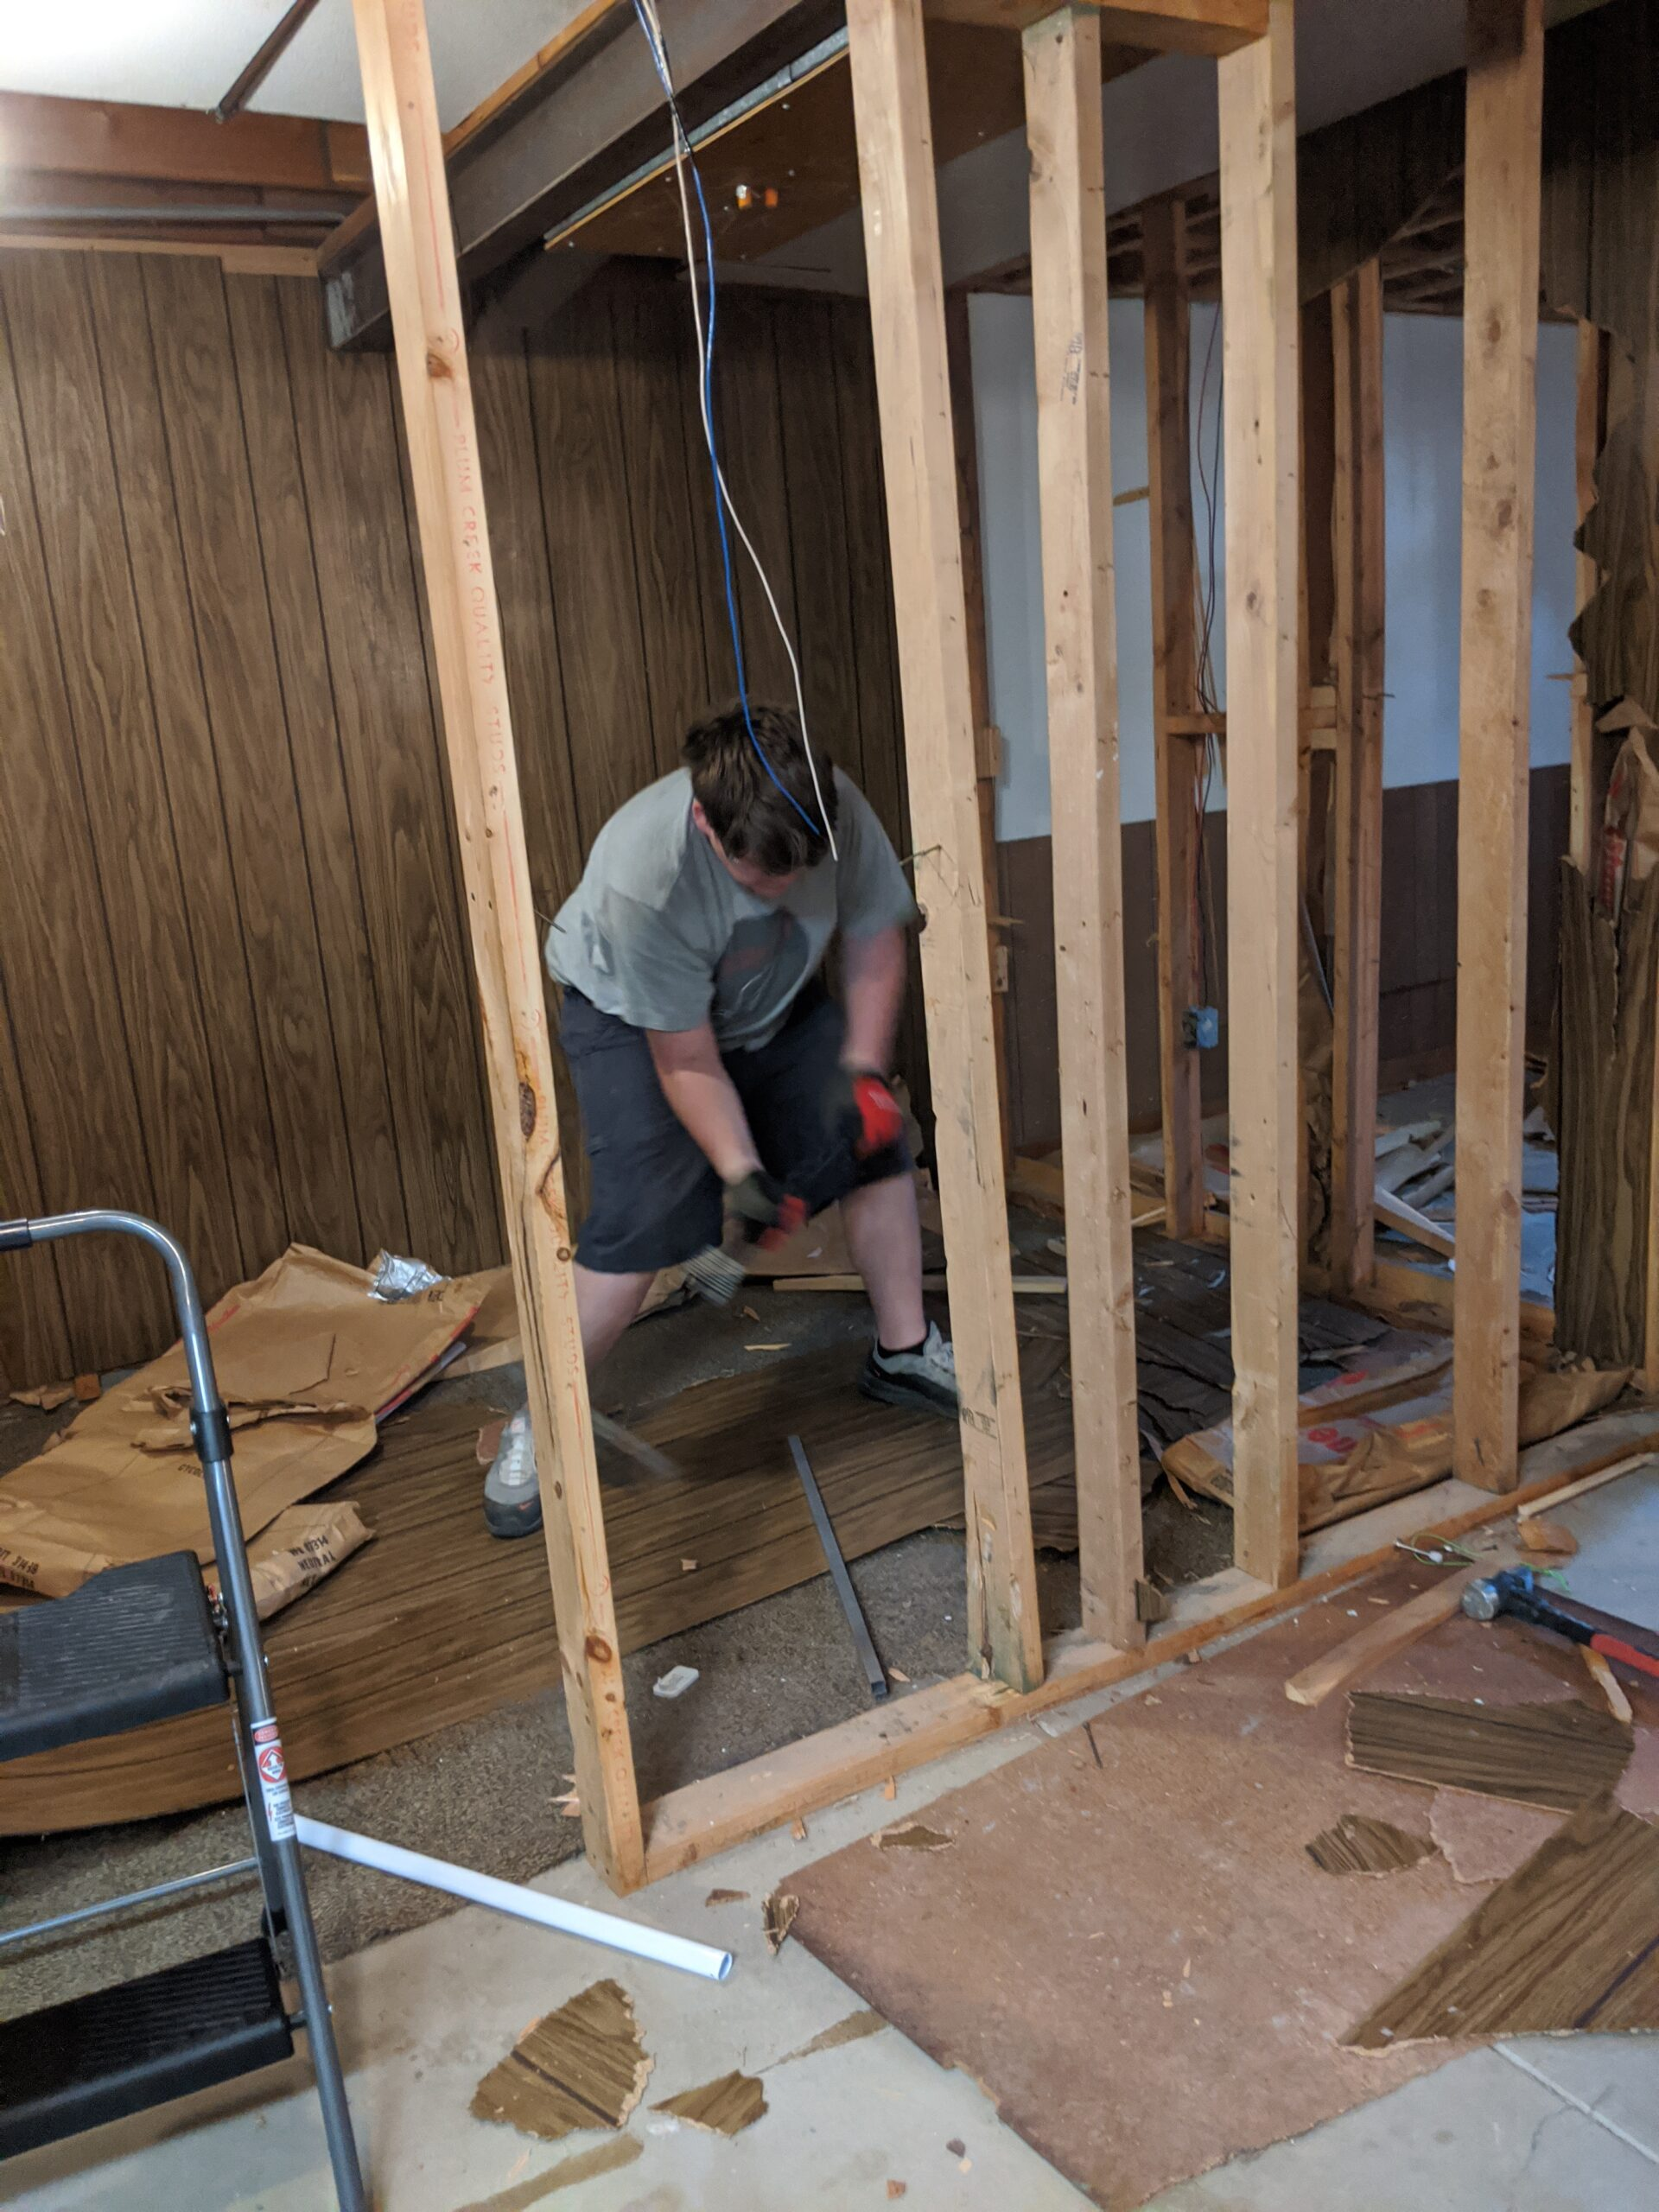 IN PROGRESS In our first round of demolition, we removed the wood paneling & framing of the basement walls.